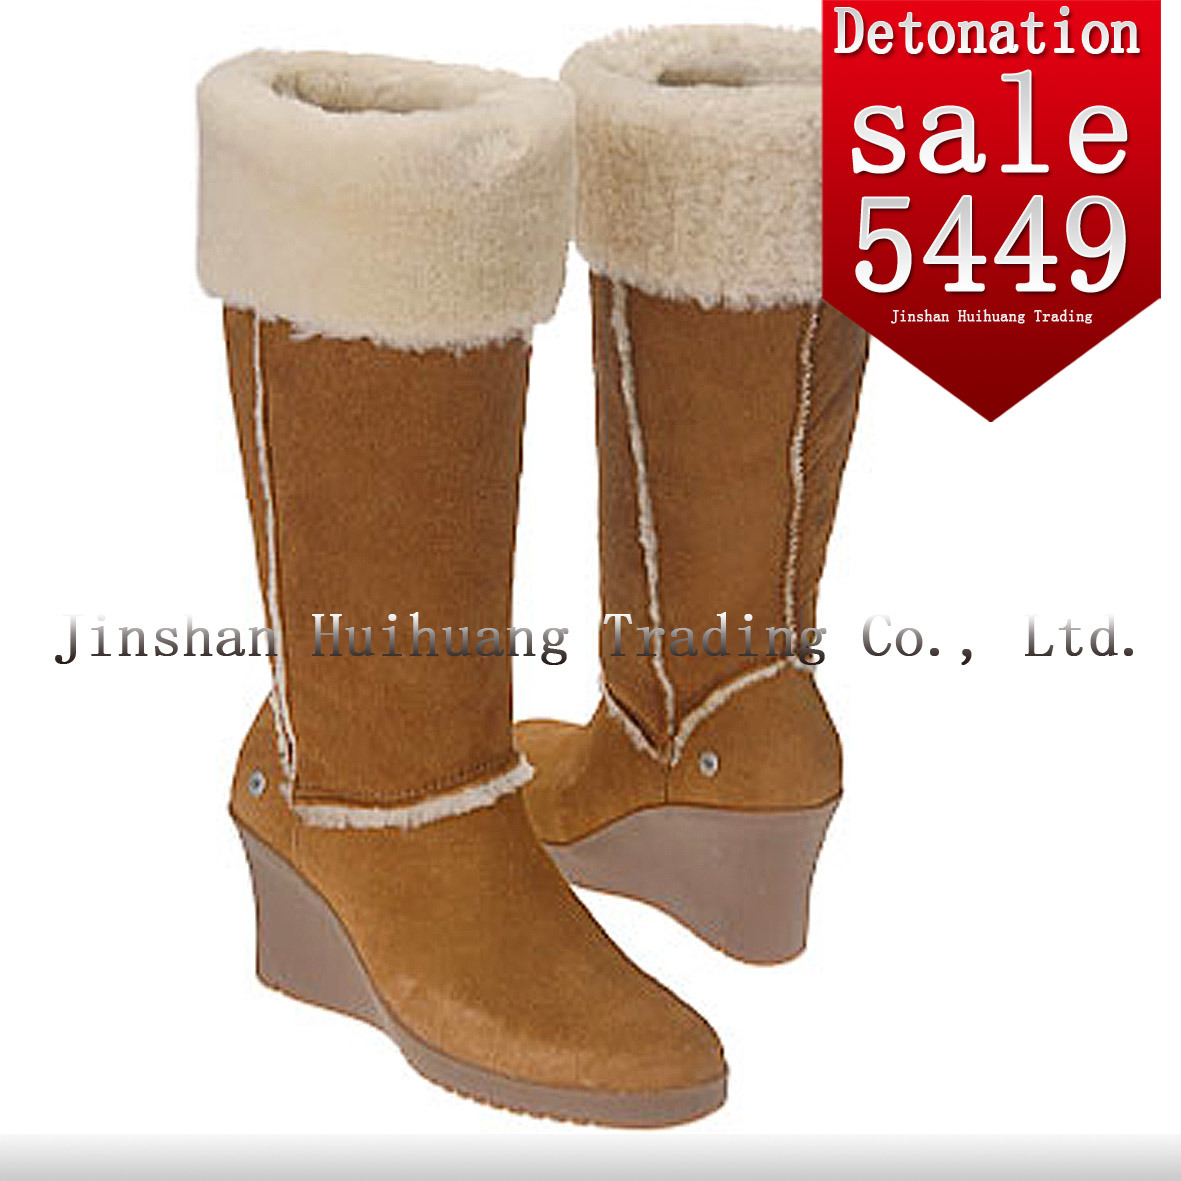 El juego de las imagenes-http://image.made-in-china.com/2f0j00NBStyQsnMKcT/Ladies-Fashion-5449-Boots.jpg